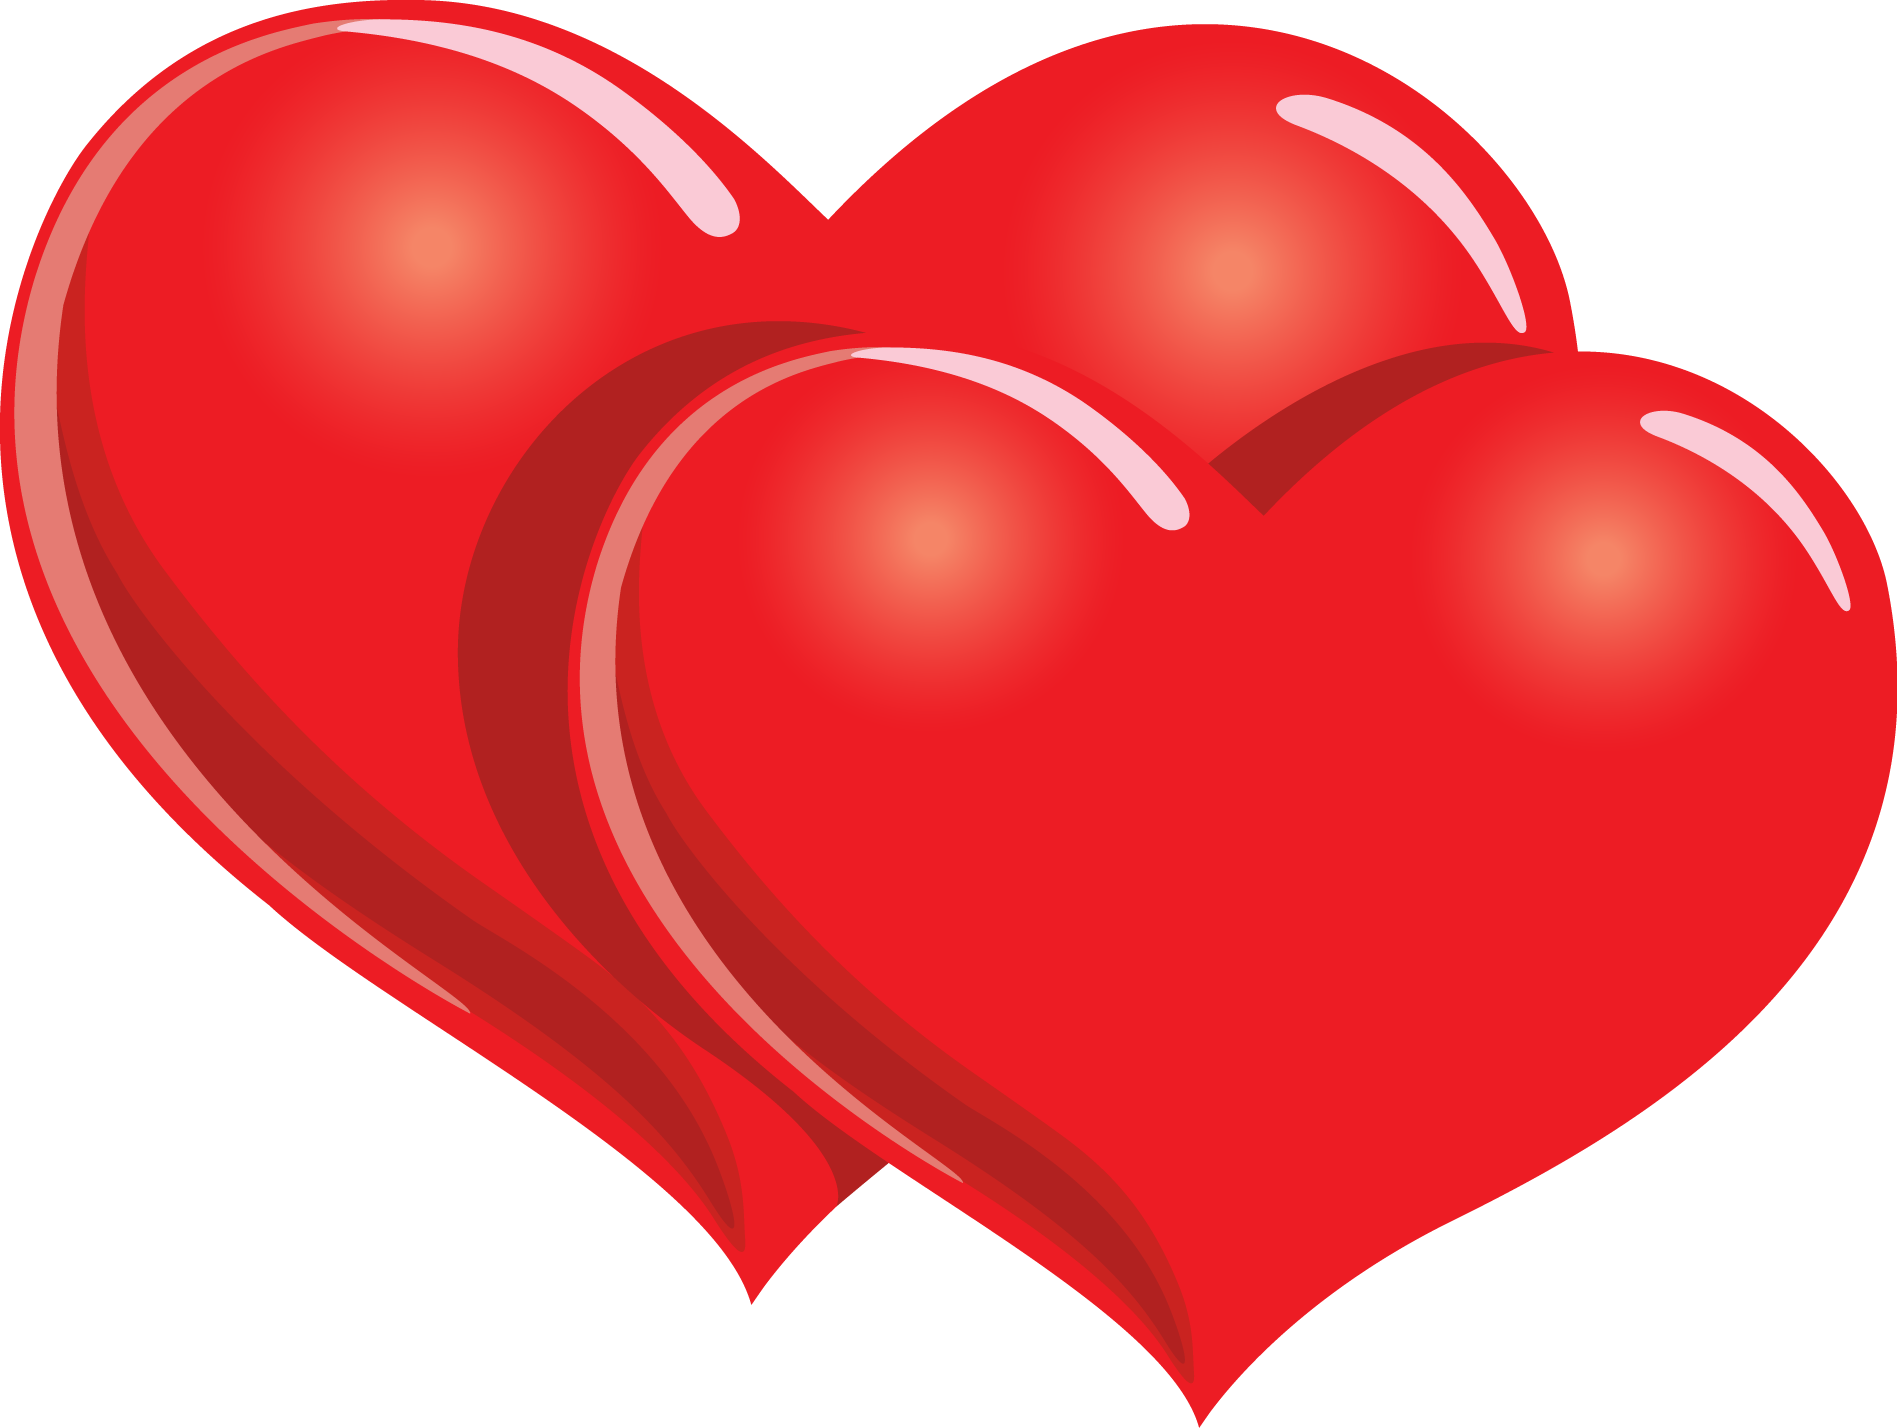 Two Red Hearts | Clipart Panda - Free Clipart Images